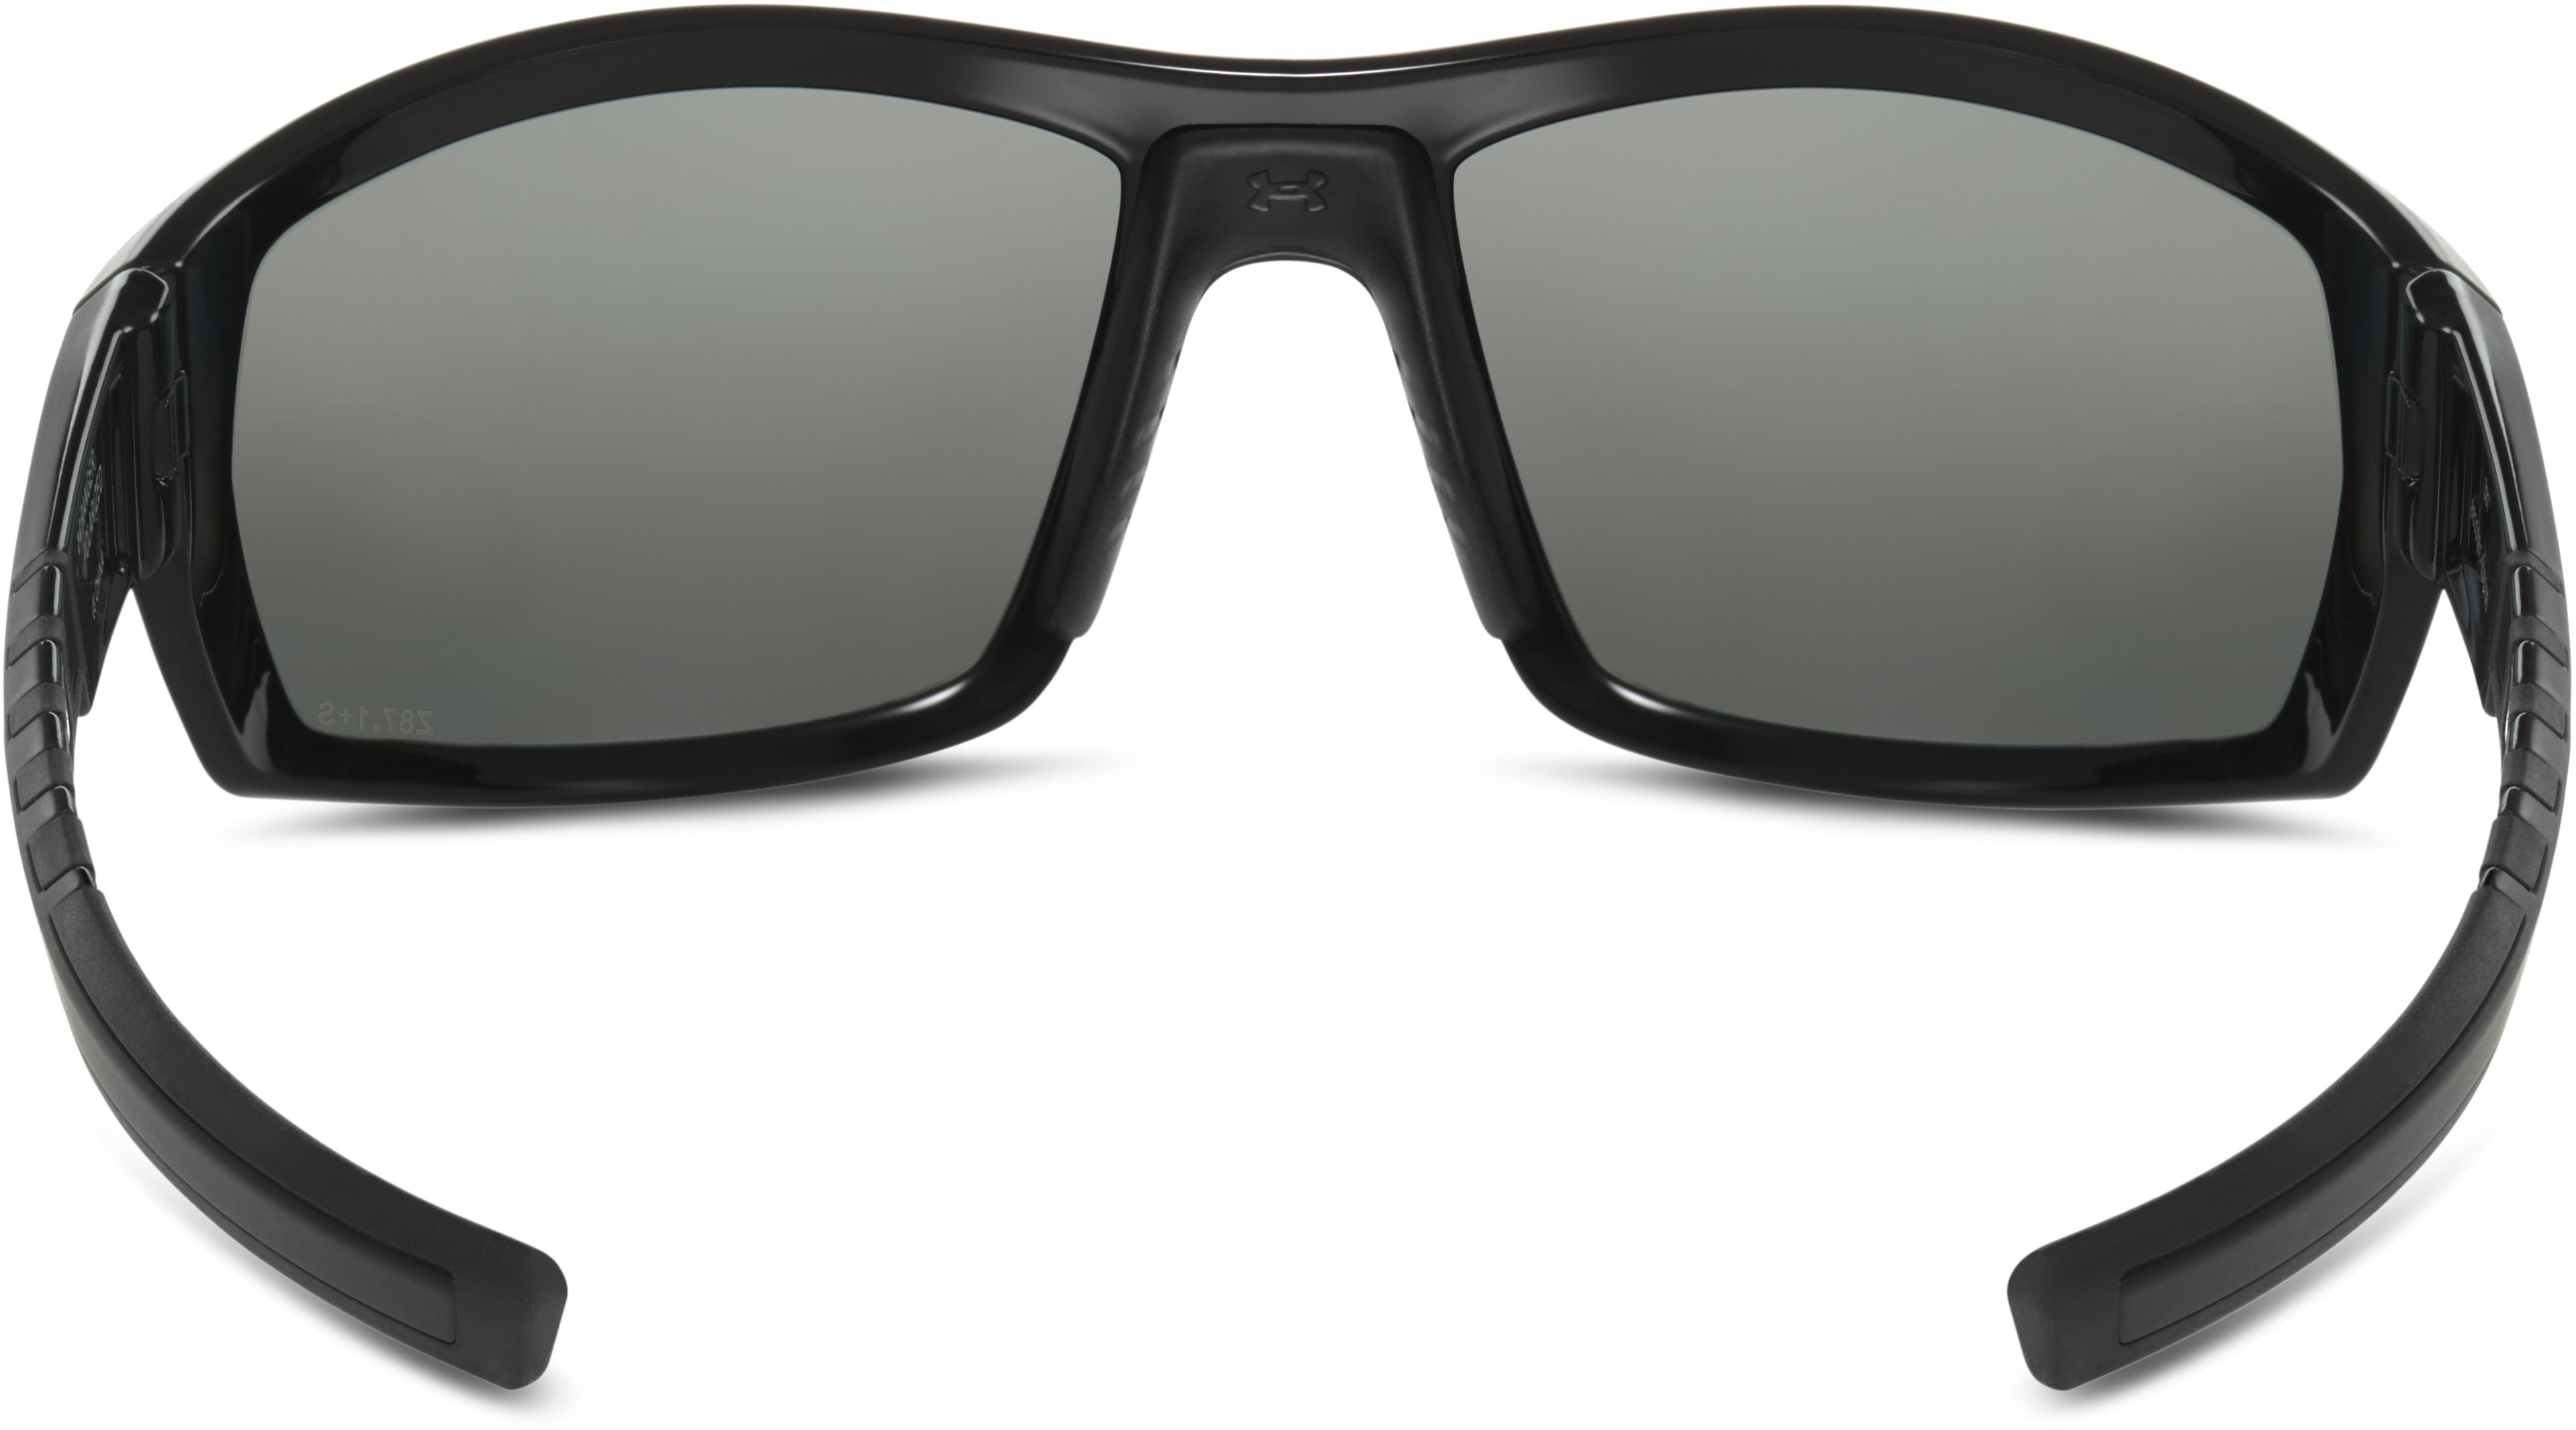 UA Ranger WWP Sunglasses, Satin Black